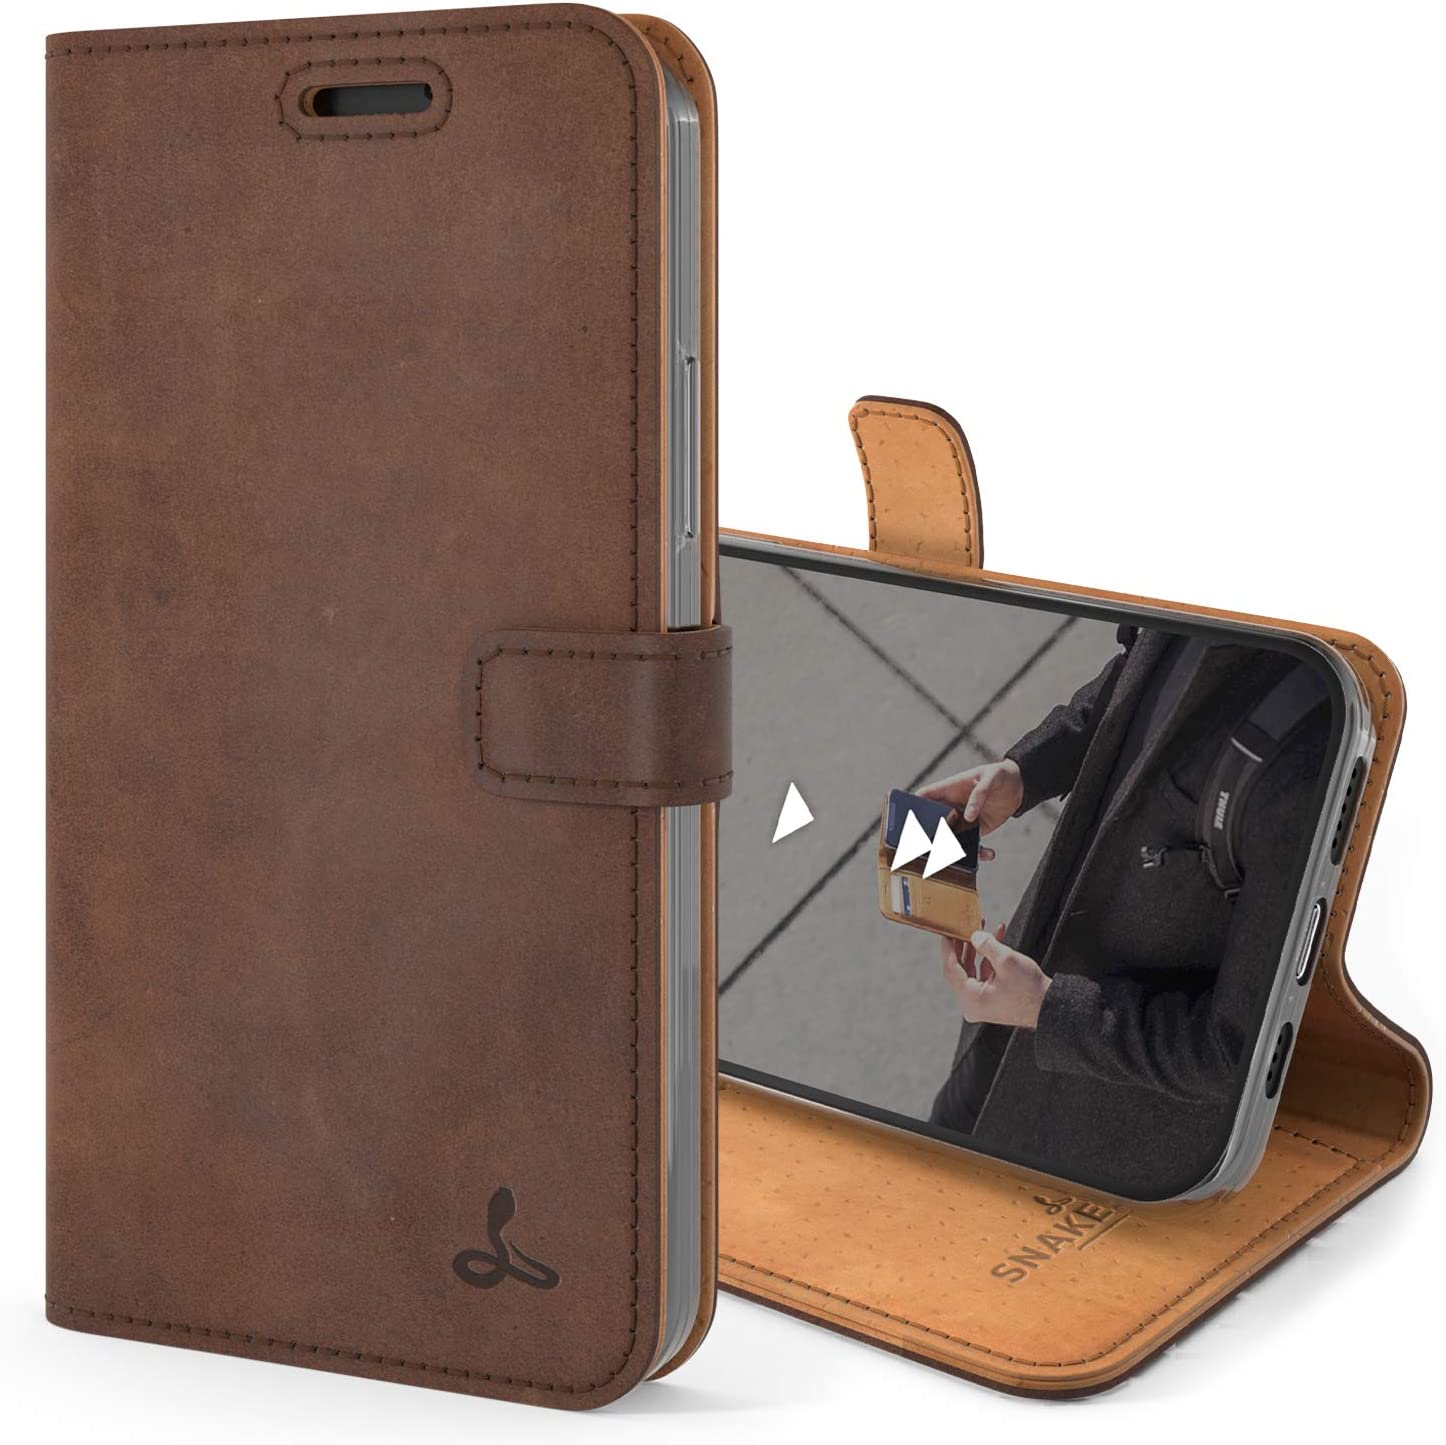 Snakehive Vintage Wallet for iPhone 12 || Real Leather Wallet Phone Case || Genuine Leather with Viewing Stand & 3 Card Holder || Flip Folio Cover with Card Slot (Brown)